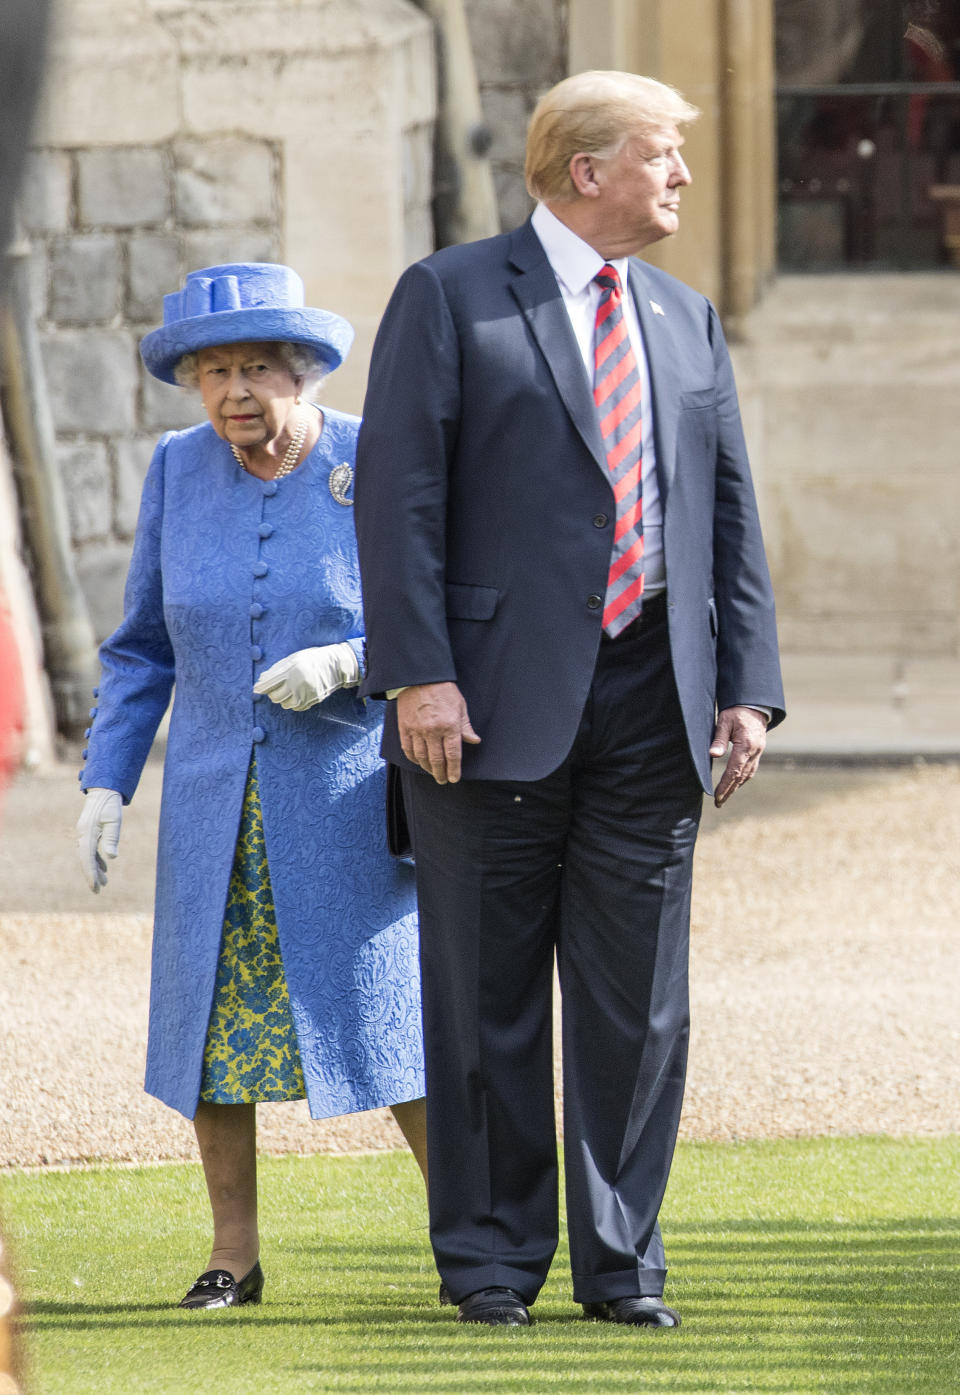 WINDSOR, ENGLAND - JULY 13: United States President Donald Trump and Britain's Queen Elizabeth II inspect a guard of honor formed by the Coldstream Guards at Windsor Castle on July 13, 2018 in Windsor, England.  Her Majesty greeted the President and Mrs. Trump on the podium in the square of the castle.  An honor guard, formed from the Coldstream Guards, gave a royal salute and the US national anthem was played.  The Queen and President inspected the honor guard before seeing the military march past.  The President and First Lady then joined Her Majesty for tea in the castle.  (Photo by Richard Pohle - WPA Pool / Getty Images)